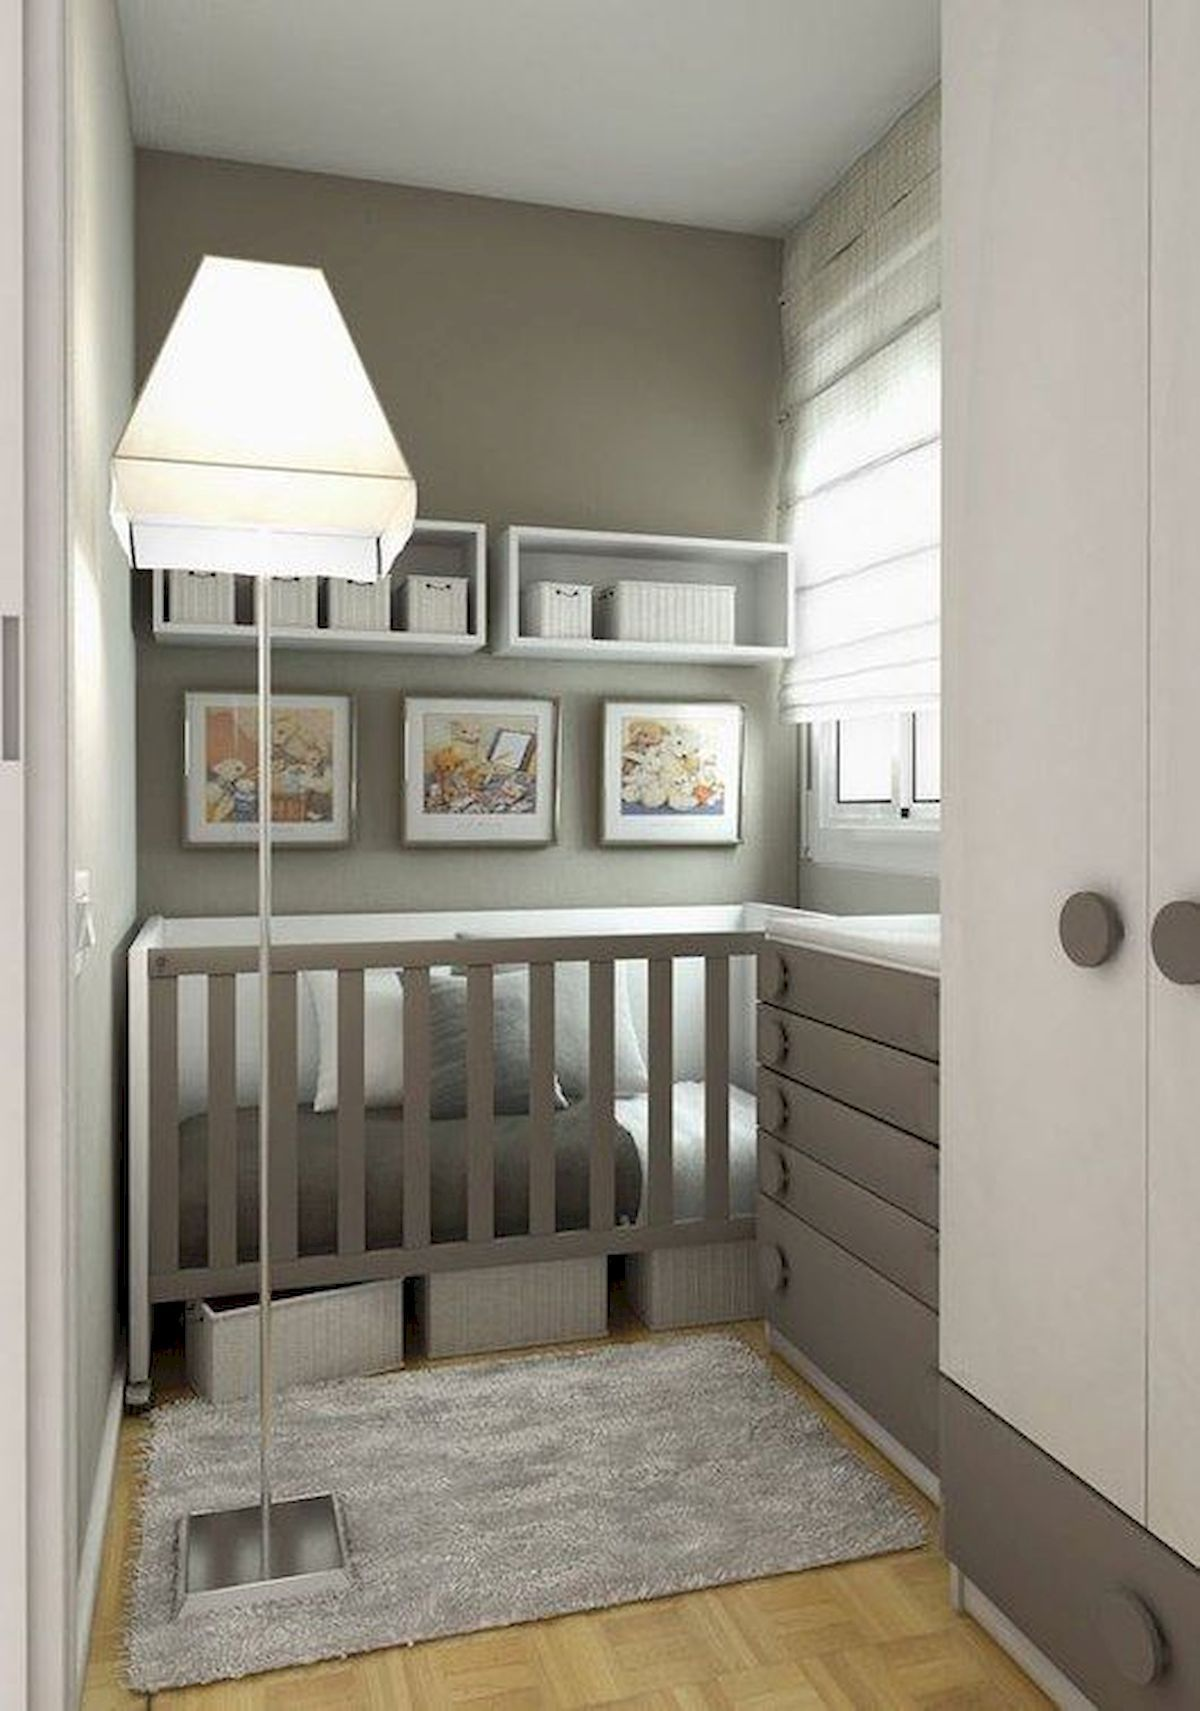 23 Awesome Small Nursery Design Ideas 14 Small Baby Room Baby